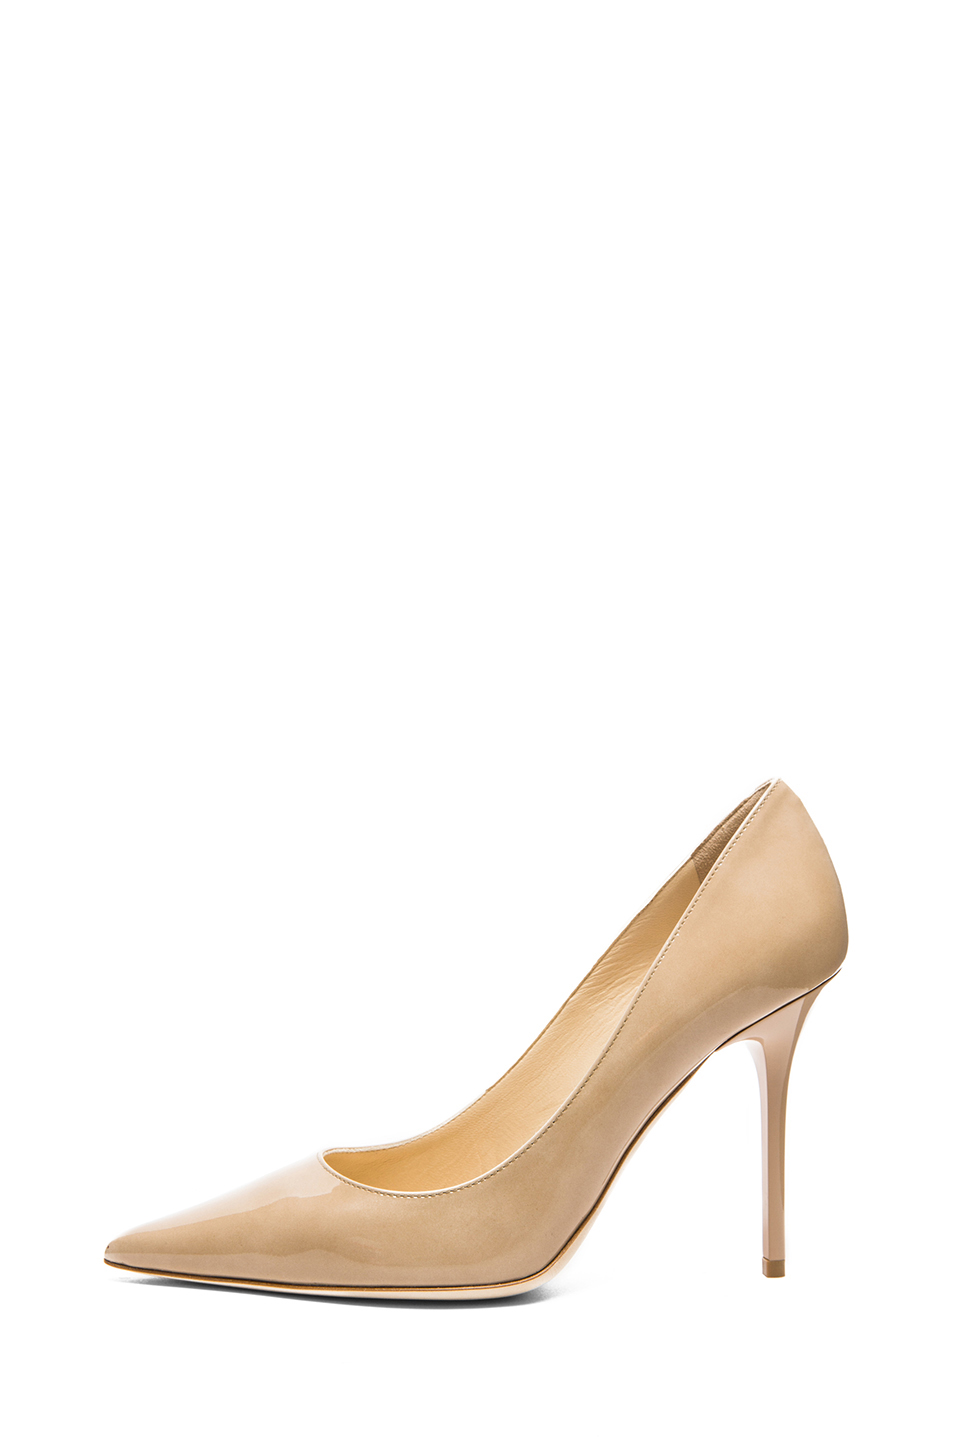 Jimmy Choo|Abel Pump 100mm in Nude Patent